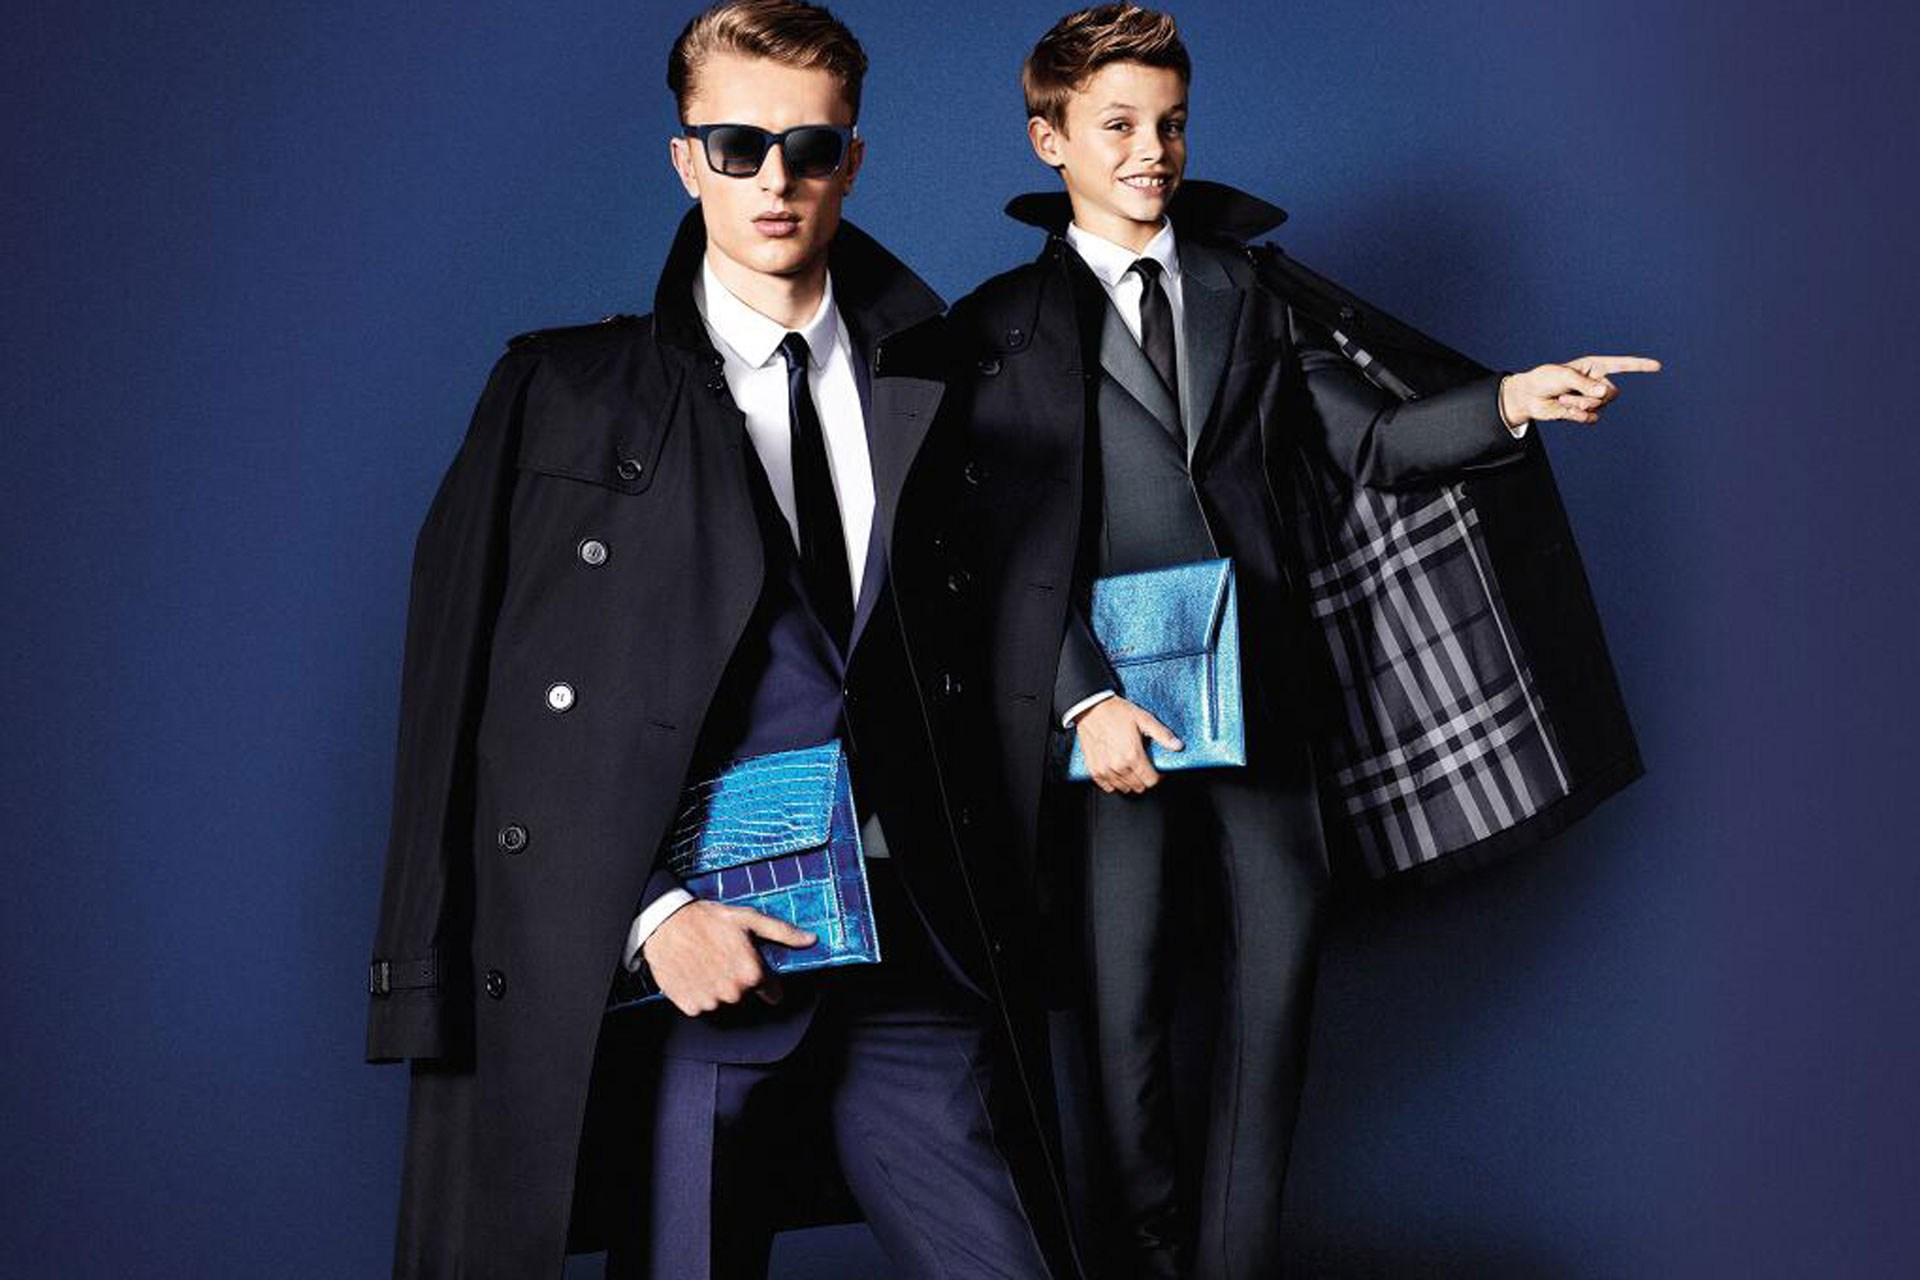 Burberry-Romeo-Beckham-Vogue-5Apr13-pr_b